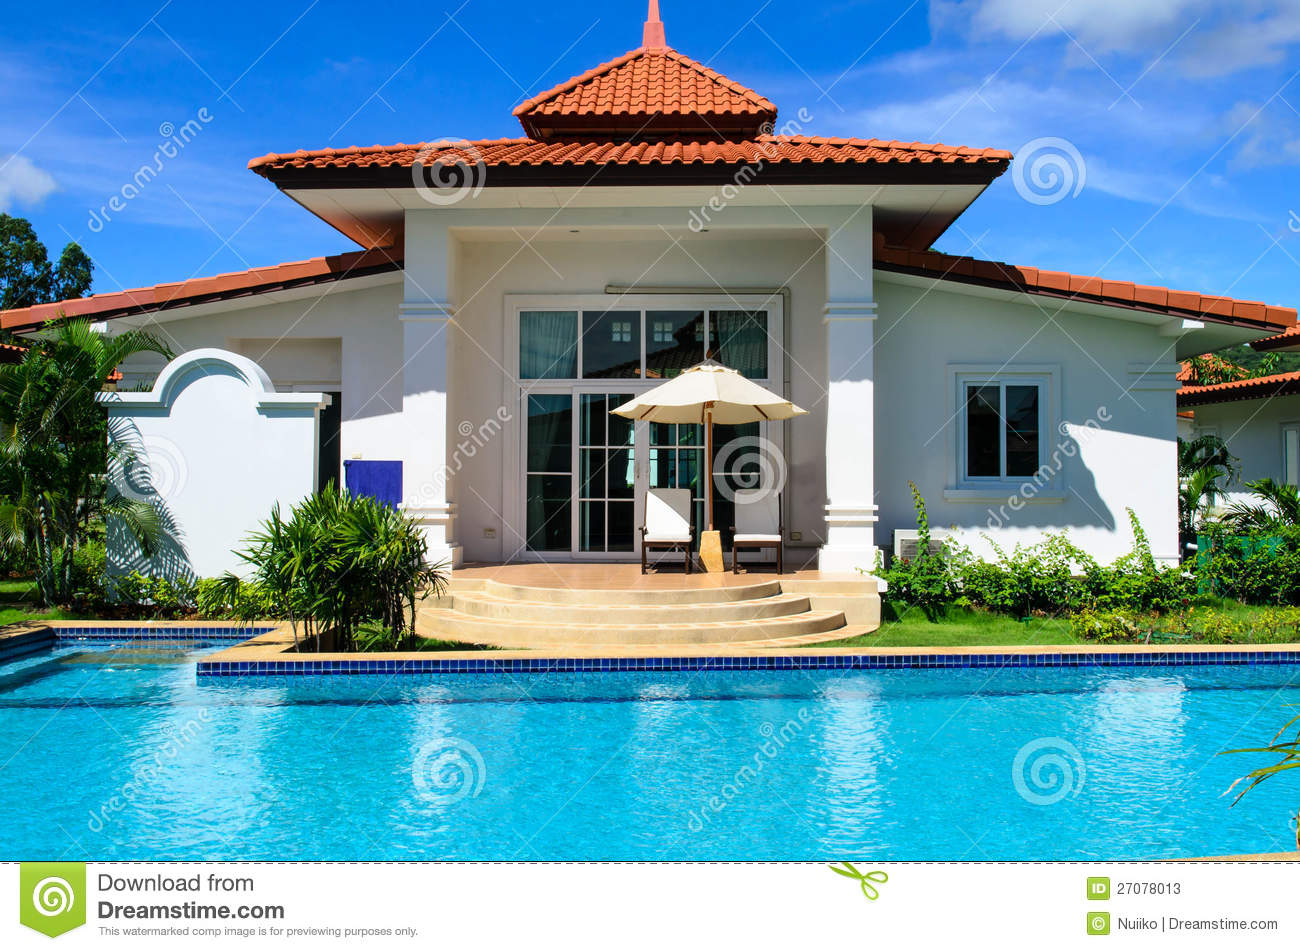 Dreams House With Pool